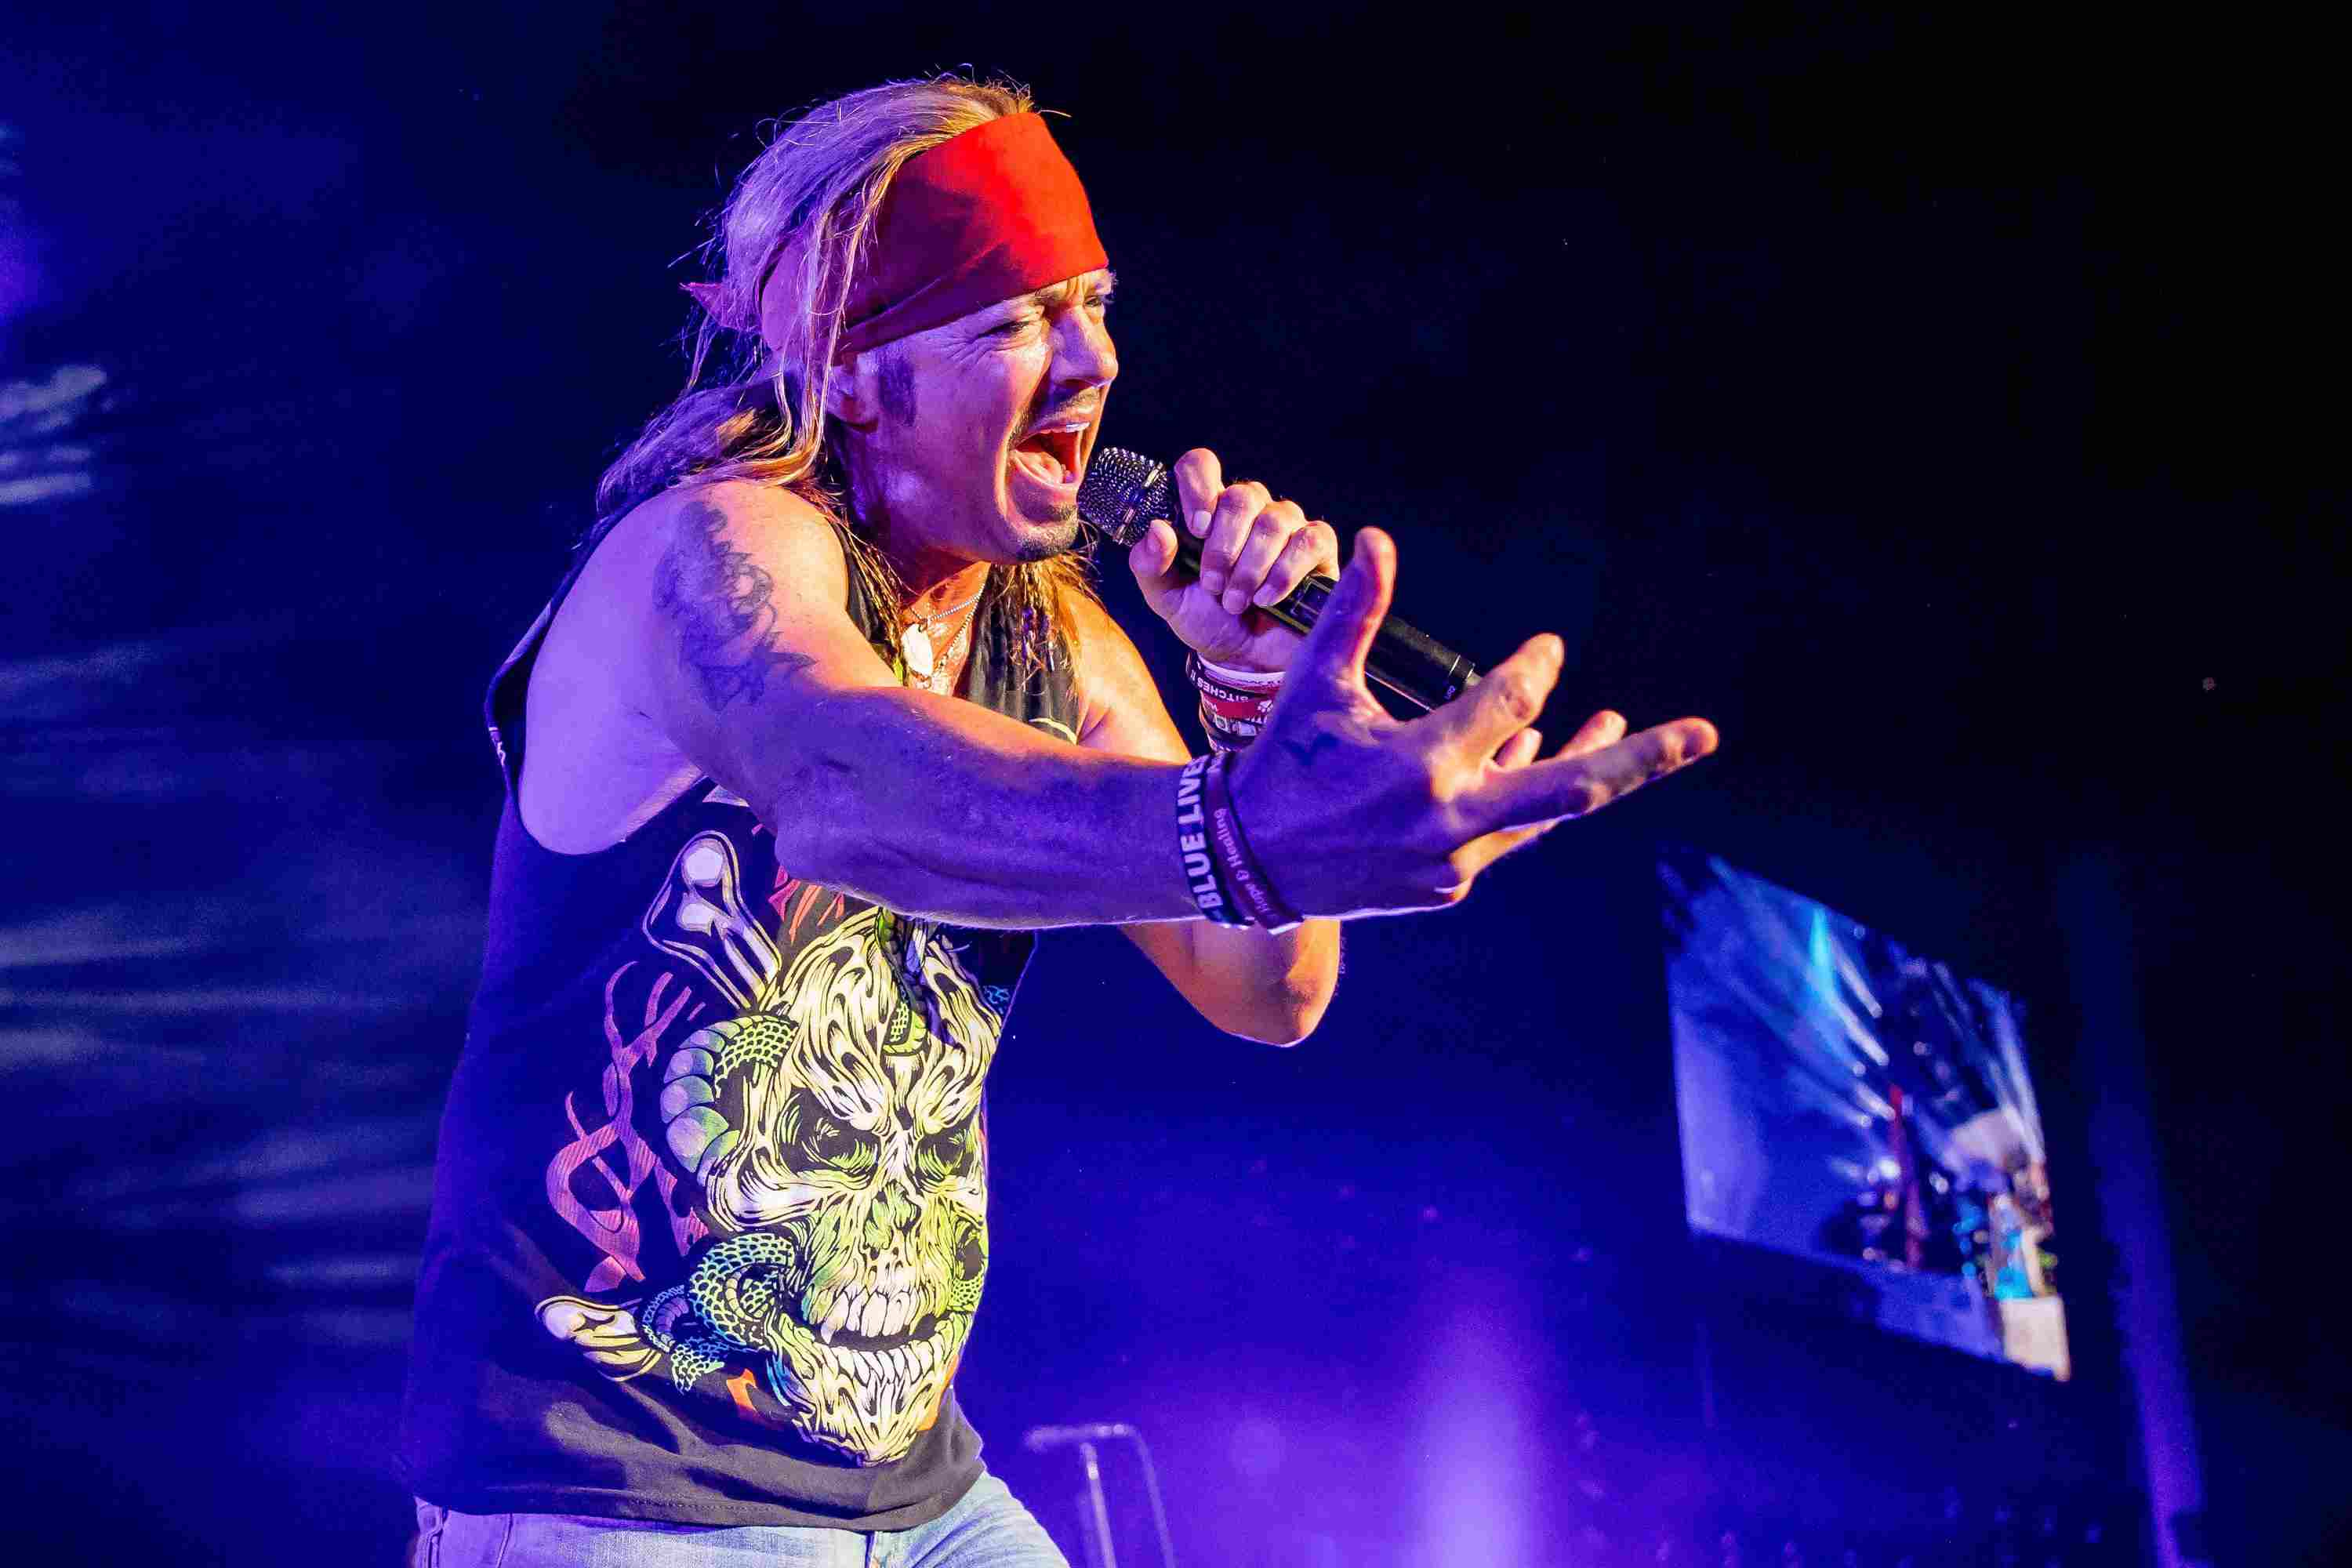 Brett Michaels of Poison on the Nothin But A Good Time tour